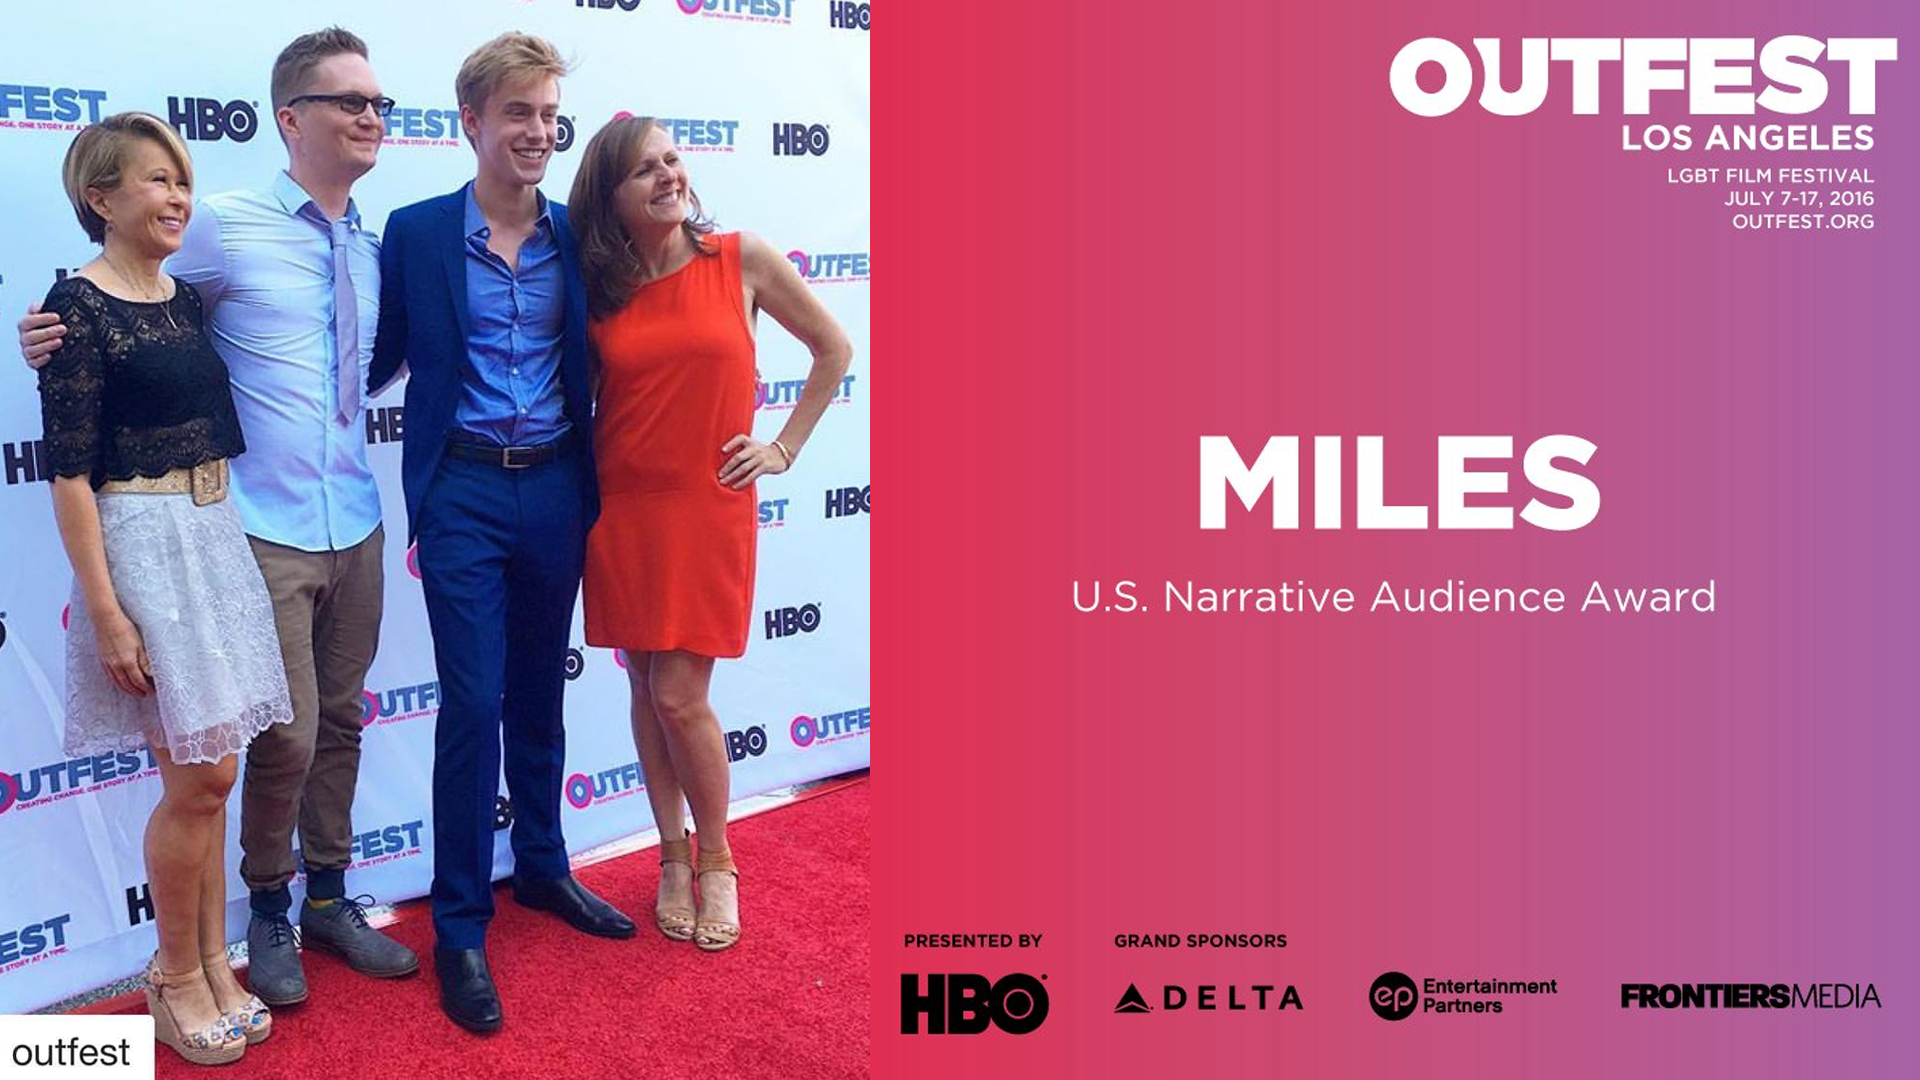 Outfest U.S Narrative Audience Award